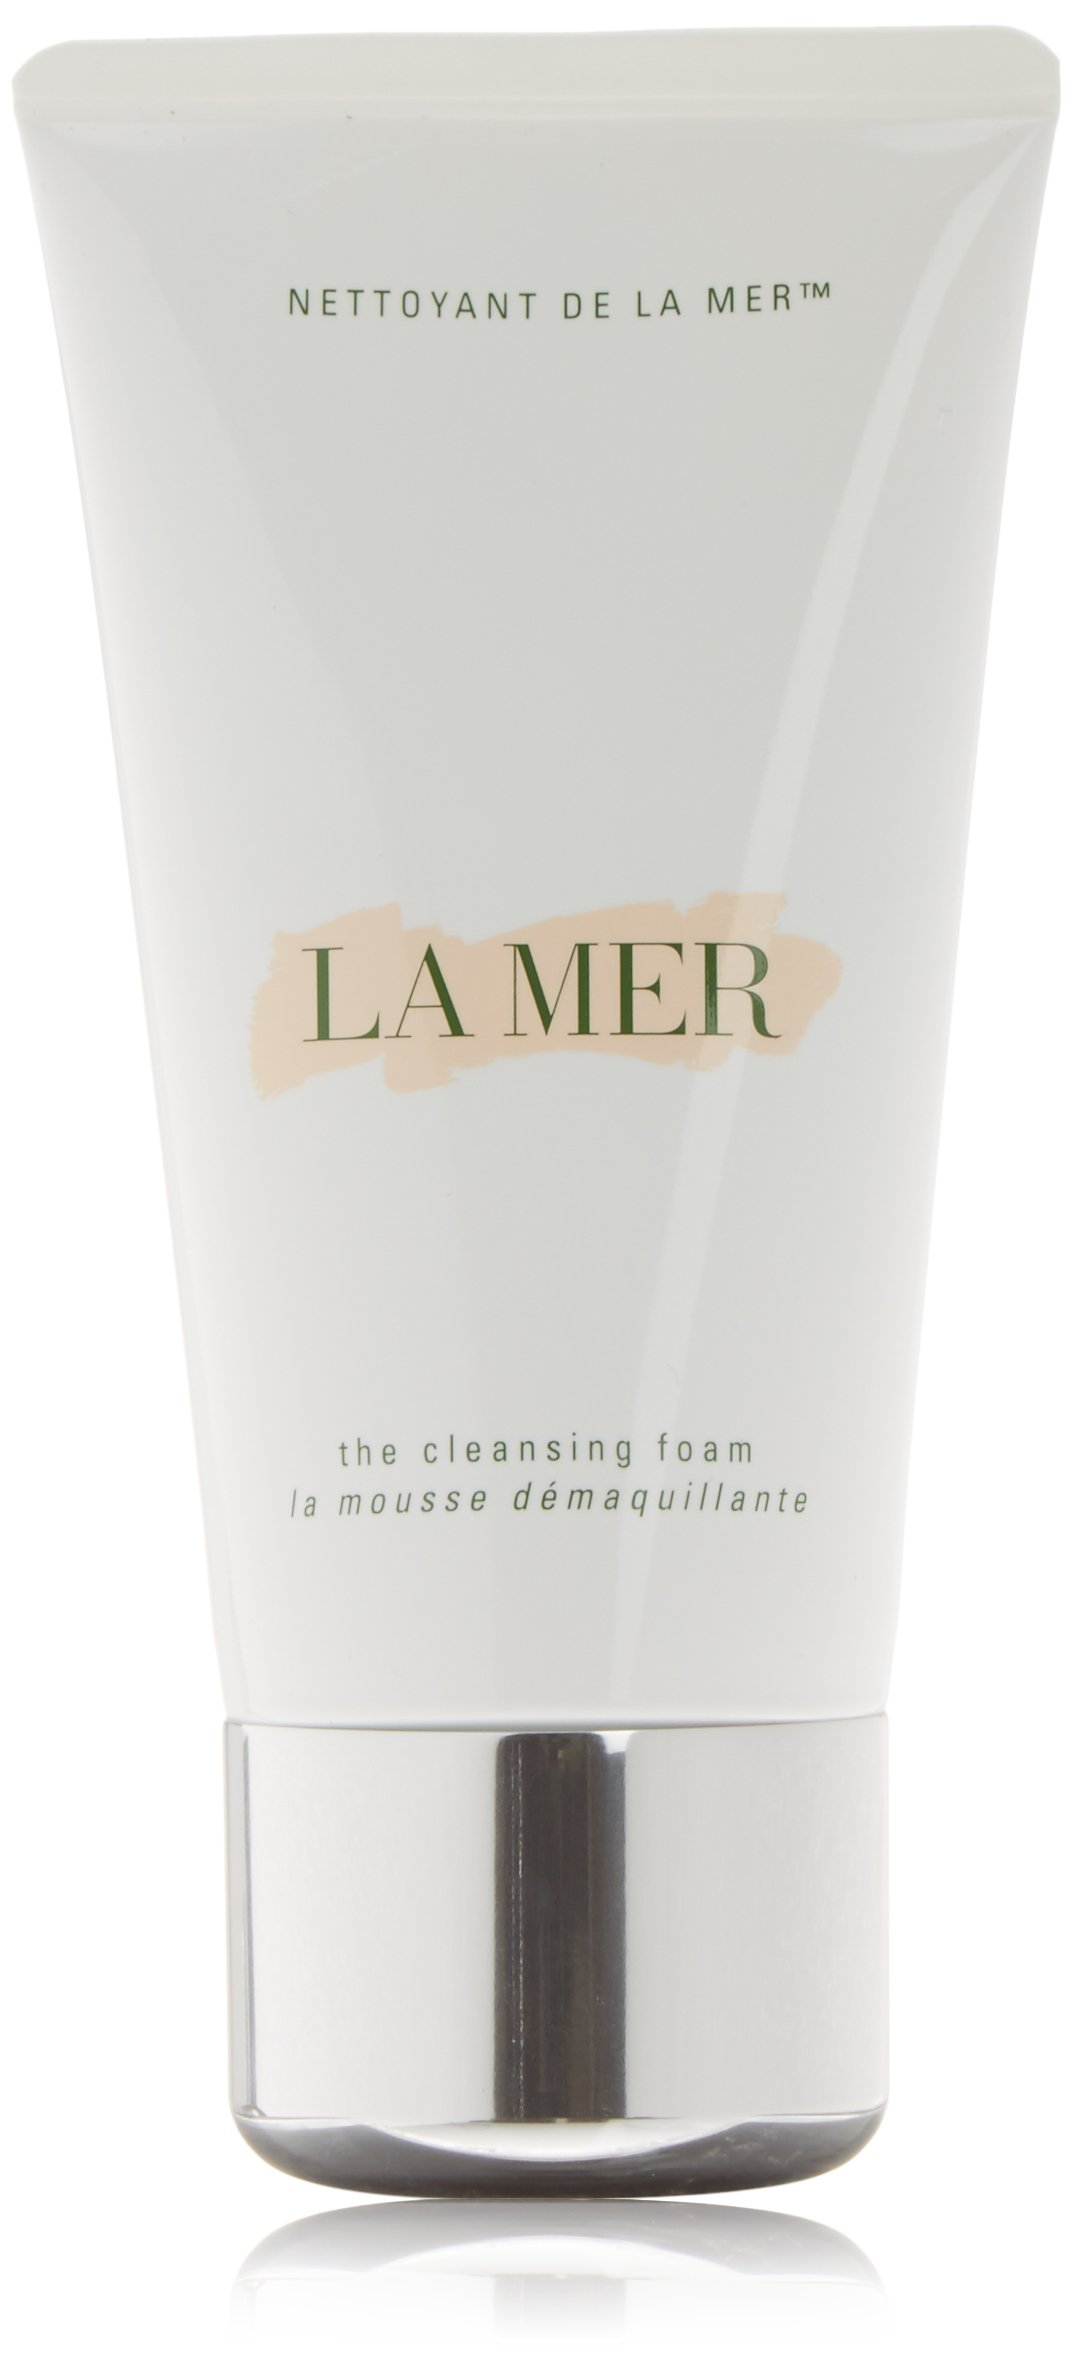 La Mer The Cleansing Foam for Unisex, 0.52 Pound